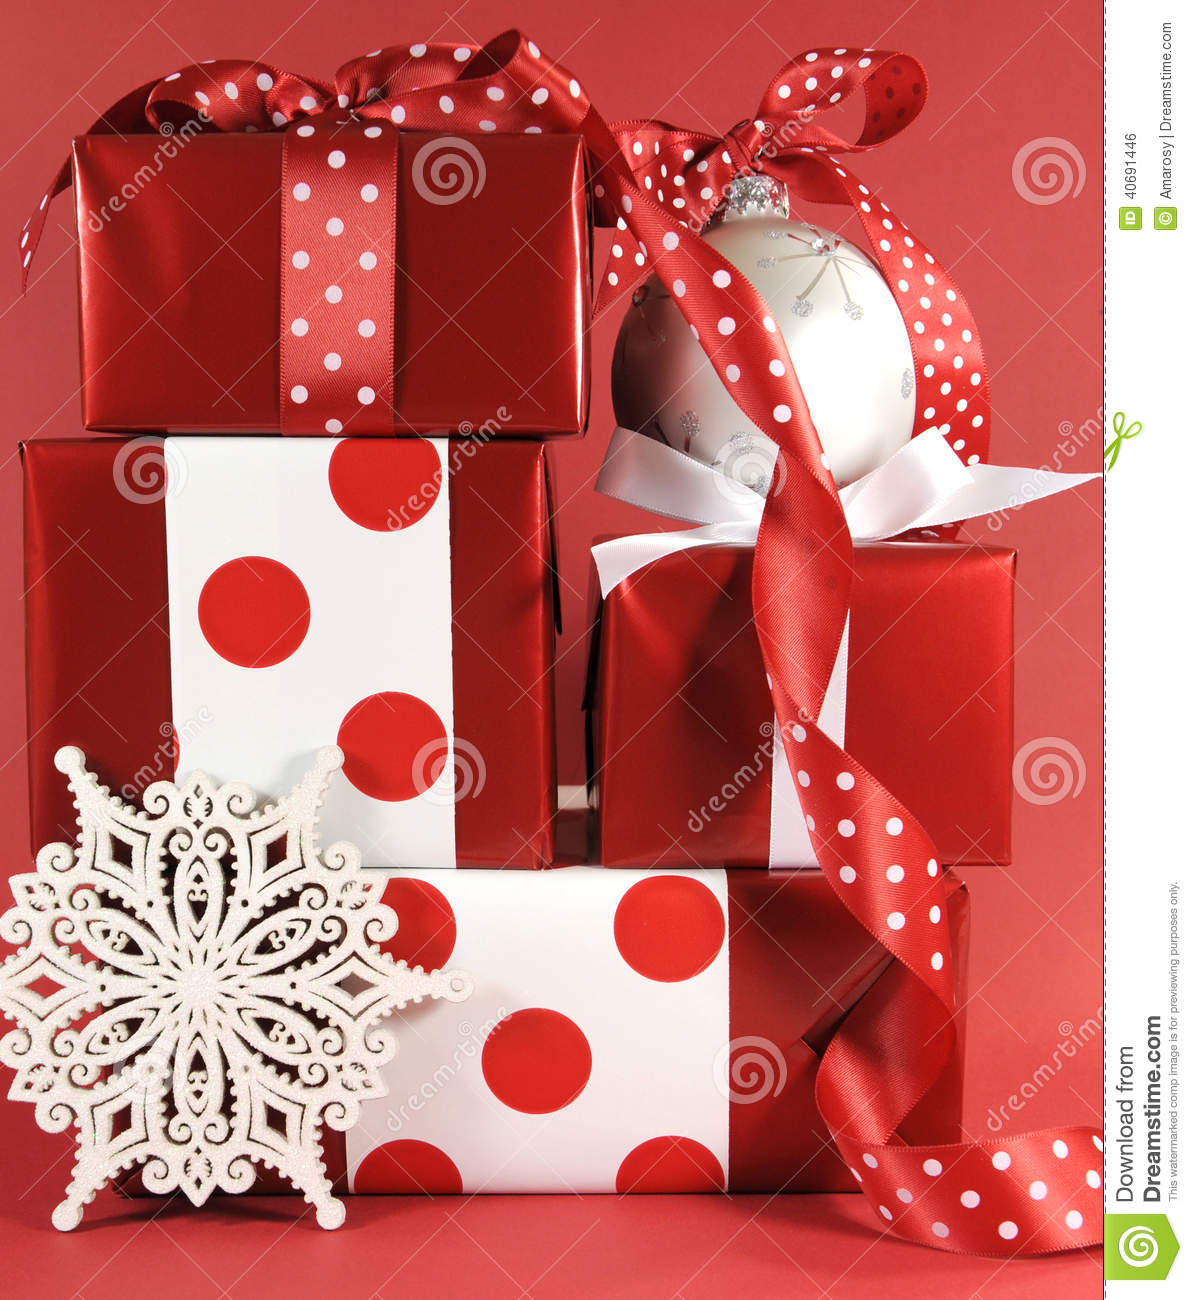 Polka dot christmas ornaments - Stack Of Red And White Polka Dot Theme Festive Gift Box Presents With Ornaments